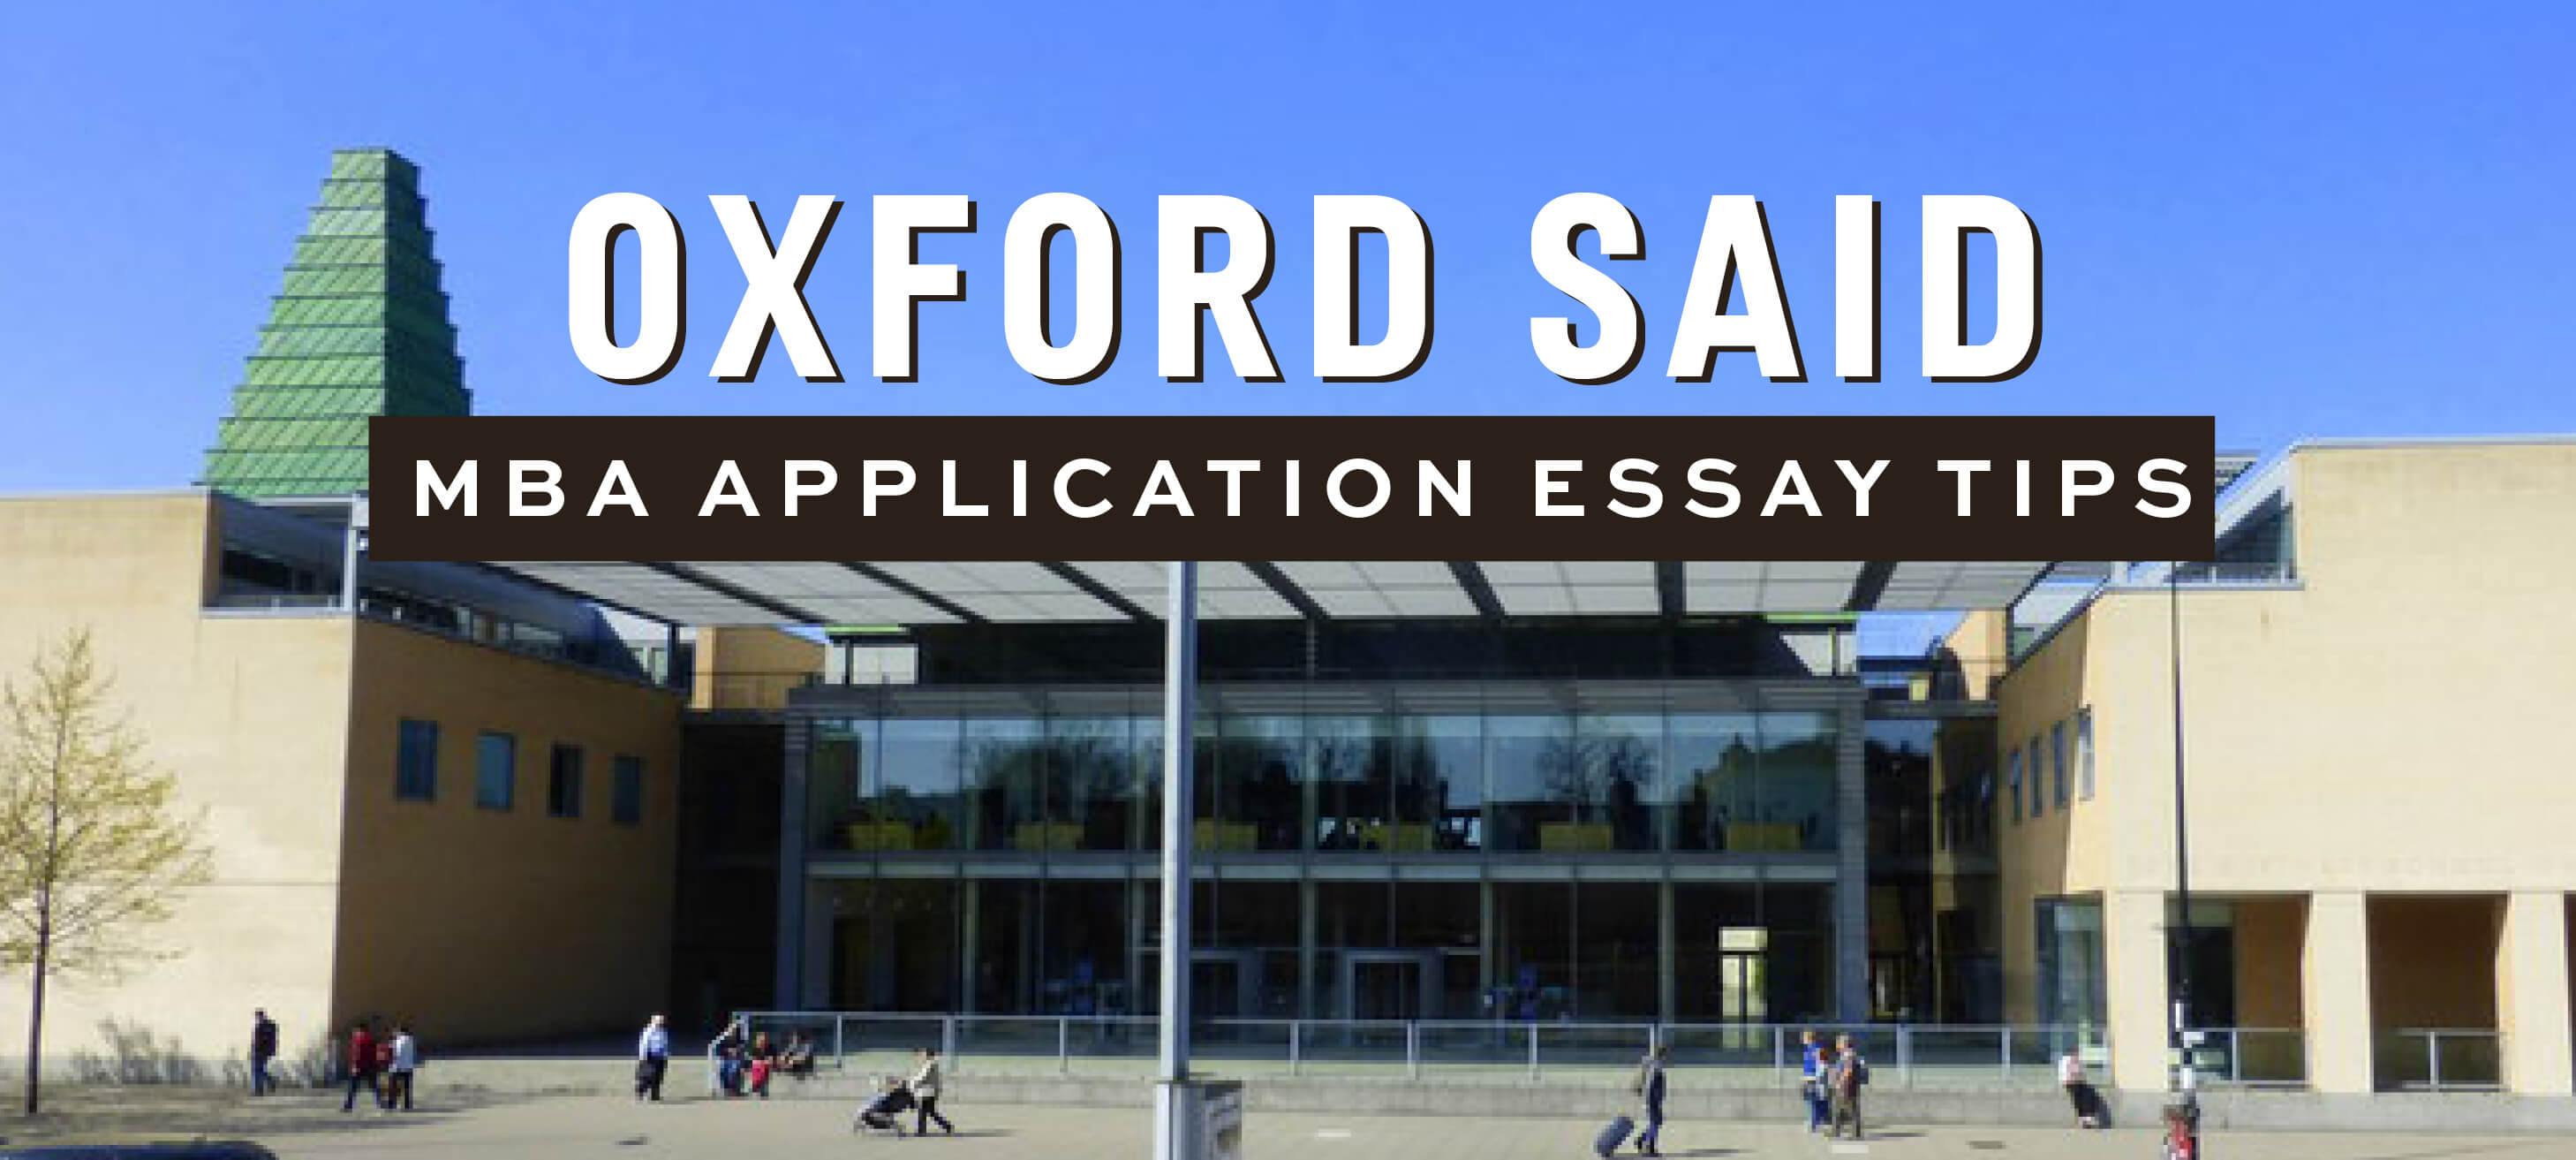 Oxford Said MBA Application Essay Tips